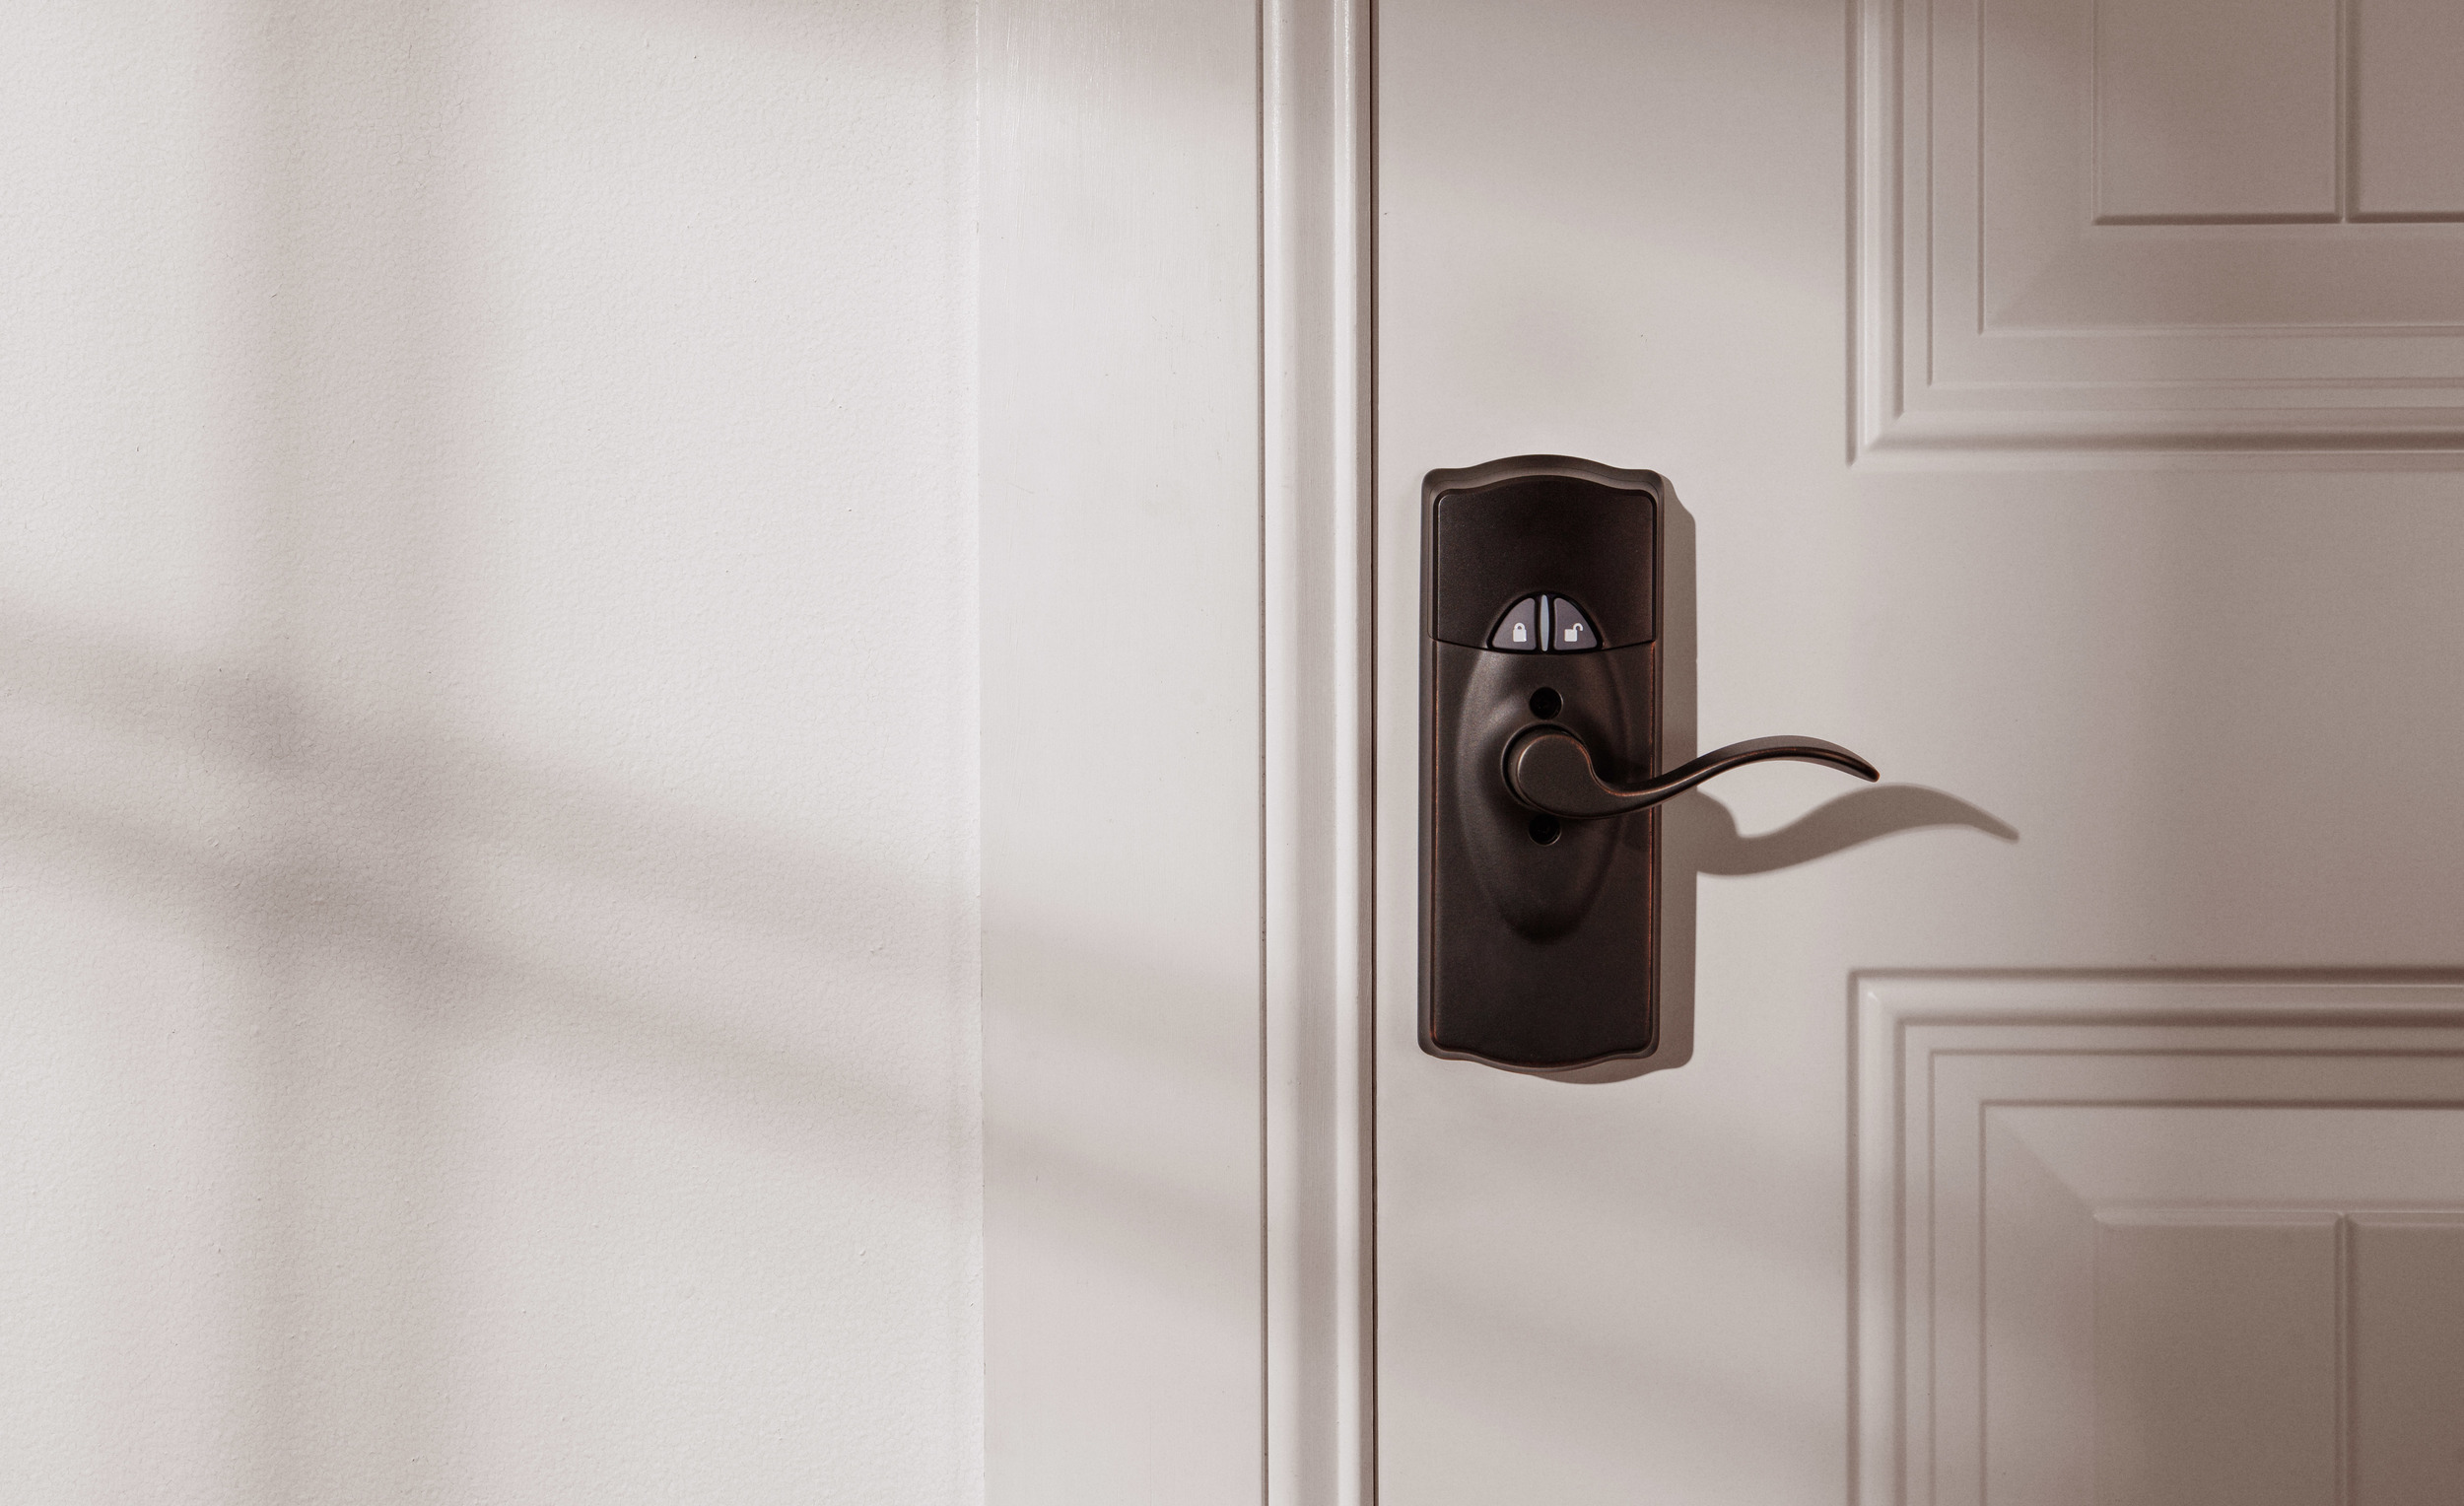 WINK_SCHLAGE-CAMELOT-RESIDENTIAL-CONNECTED-KEYPAD-LOCK-LEVER_BRONZE_LS_9370_11x18.jpg